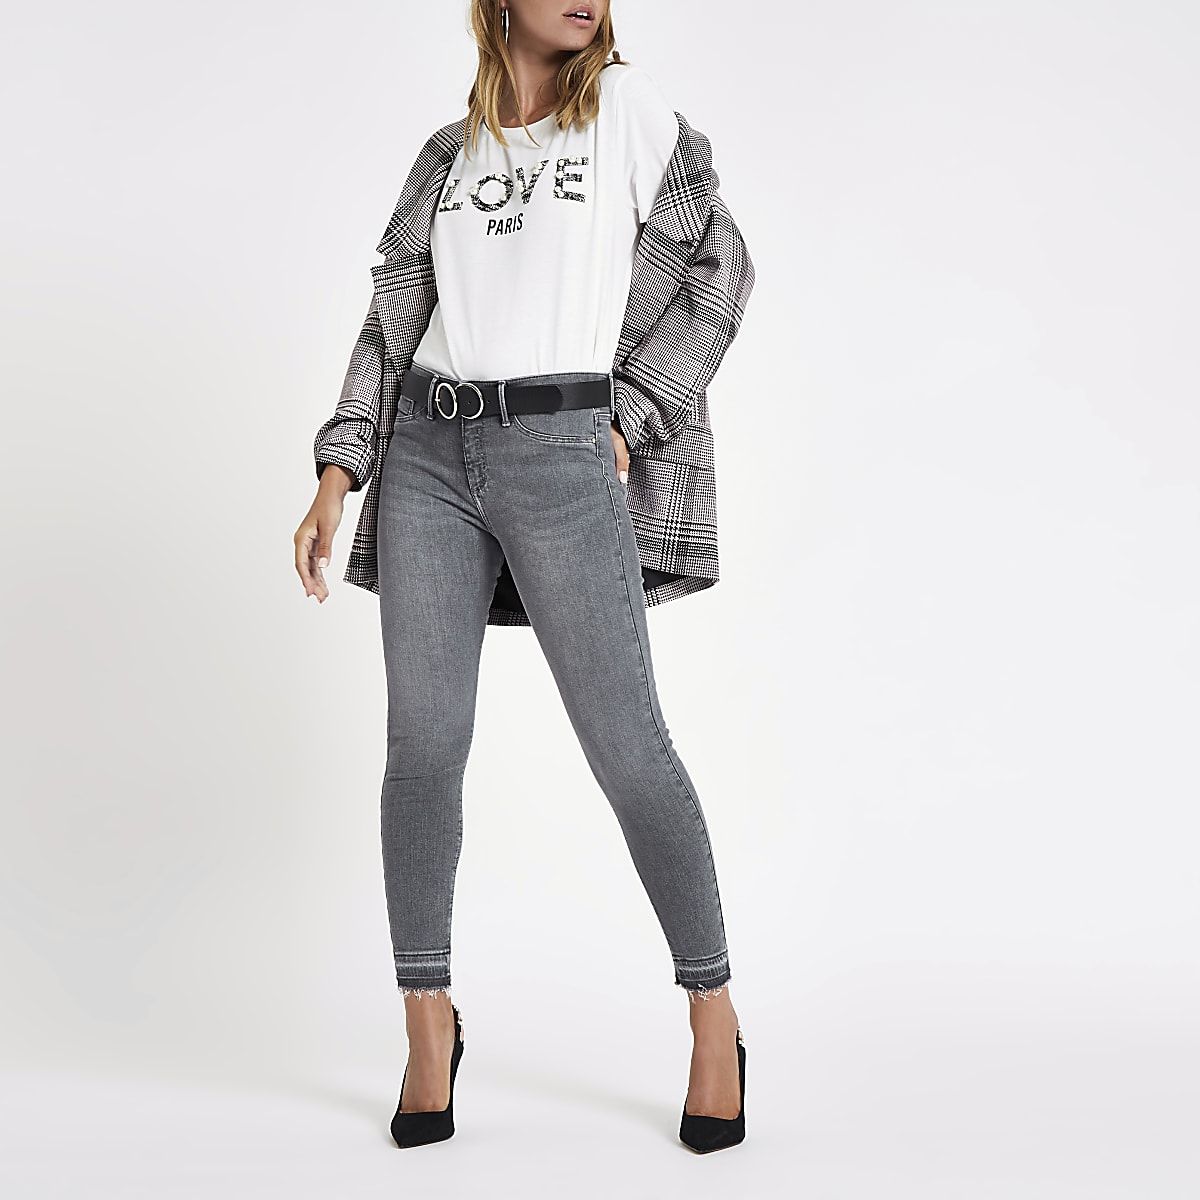 Petite grey Molly mid rise jeggings